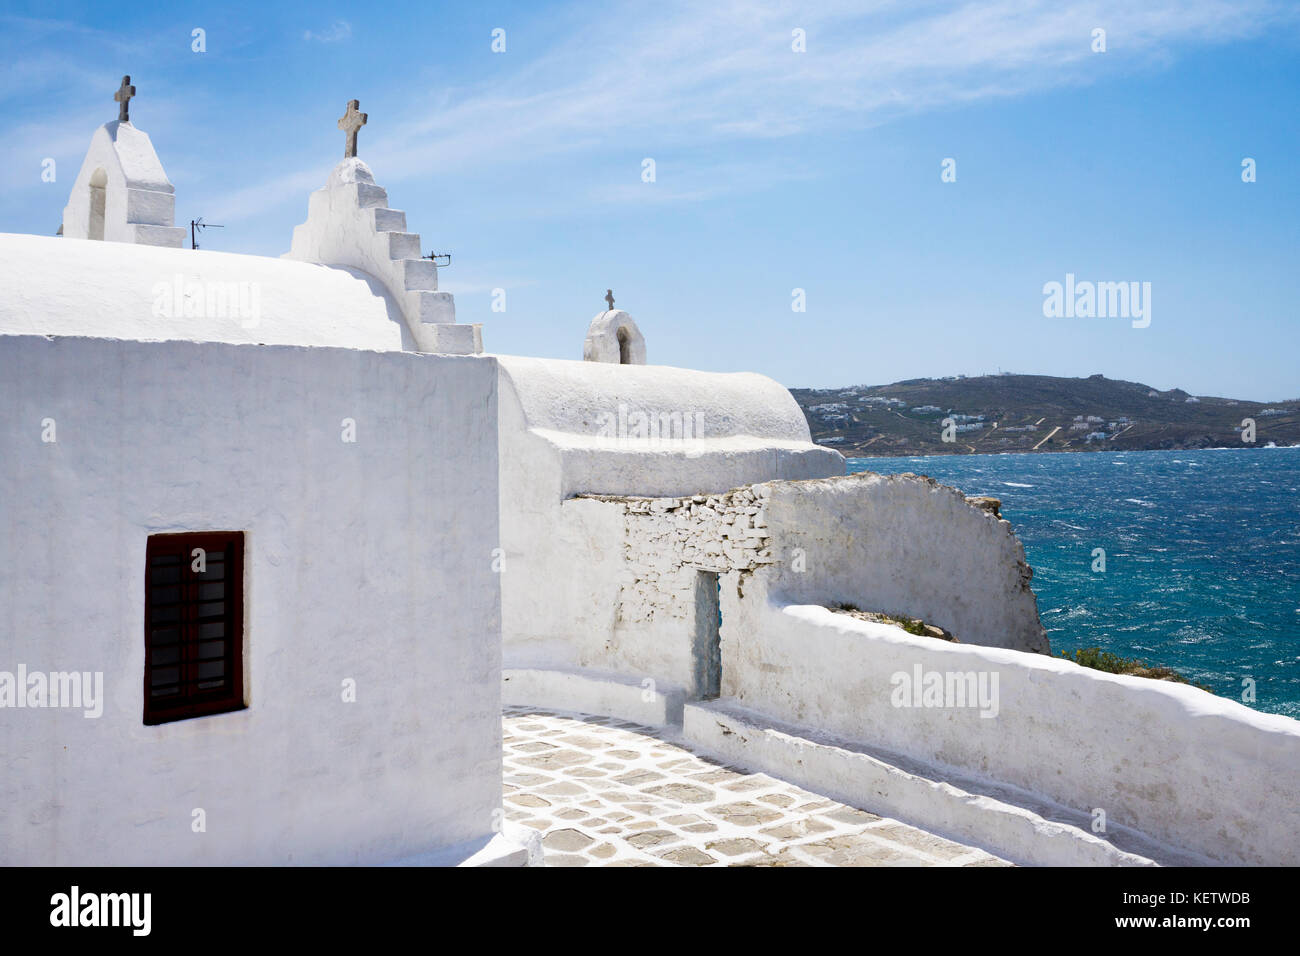 Backside of famous Panagia-Paraportiani  church at Mykonos-town, Mykonos, Greece - Stock Image